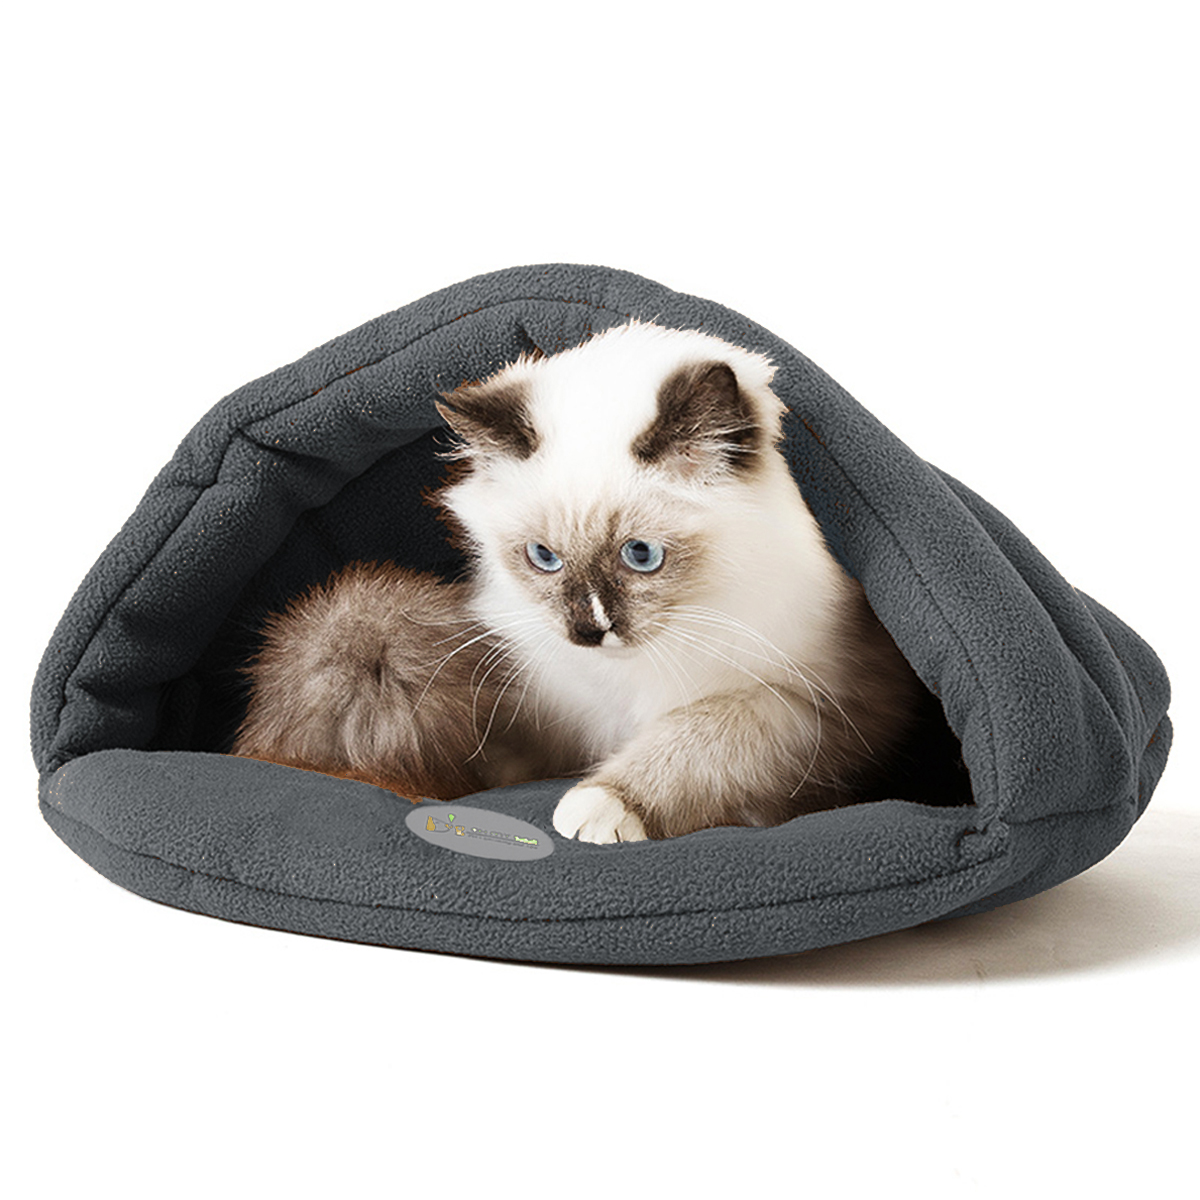 S M L Pet Cat Dog Puppy Nest Bed Soft Warm Cave House S